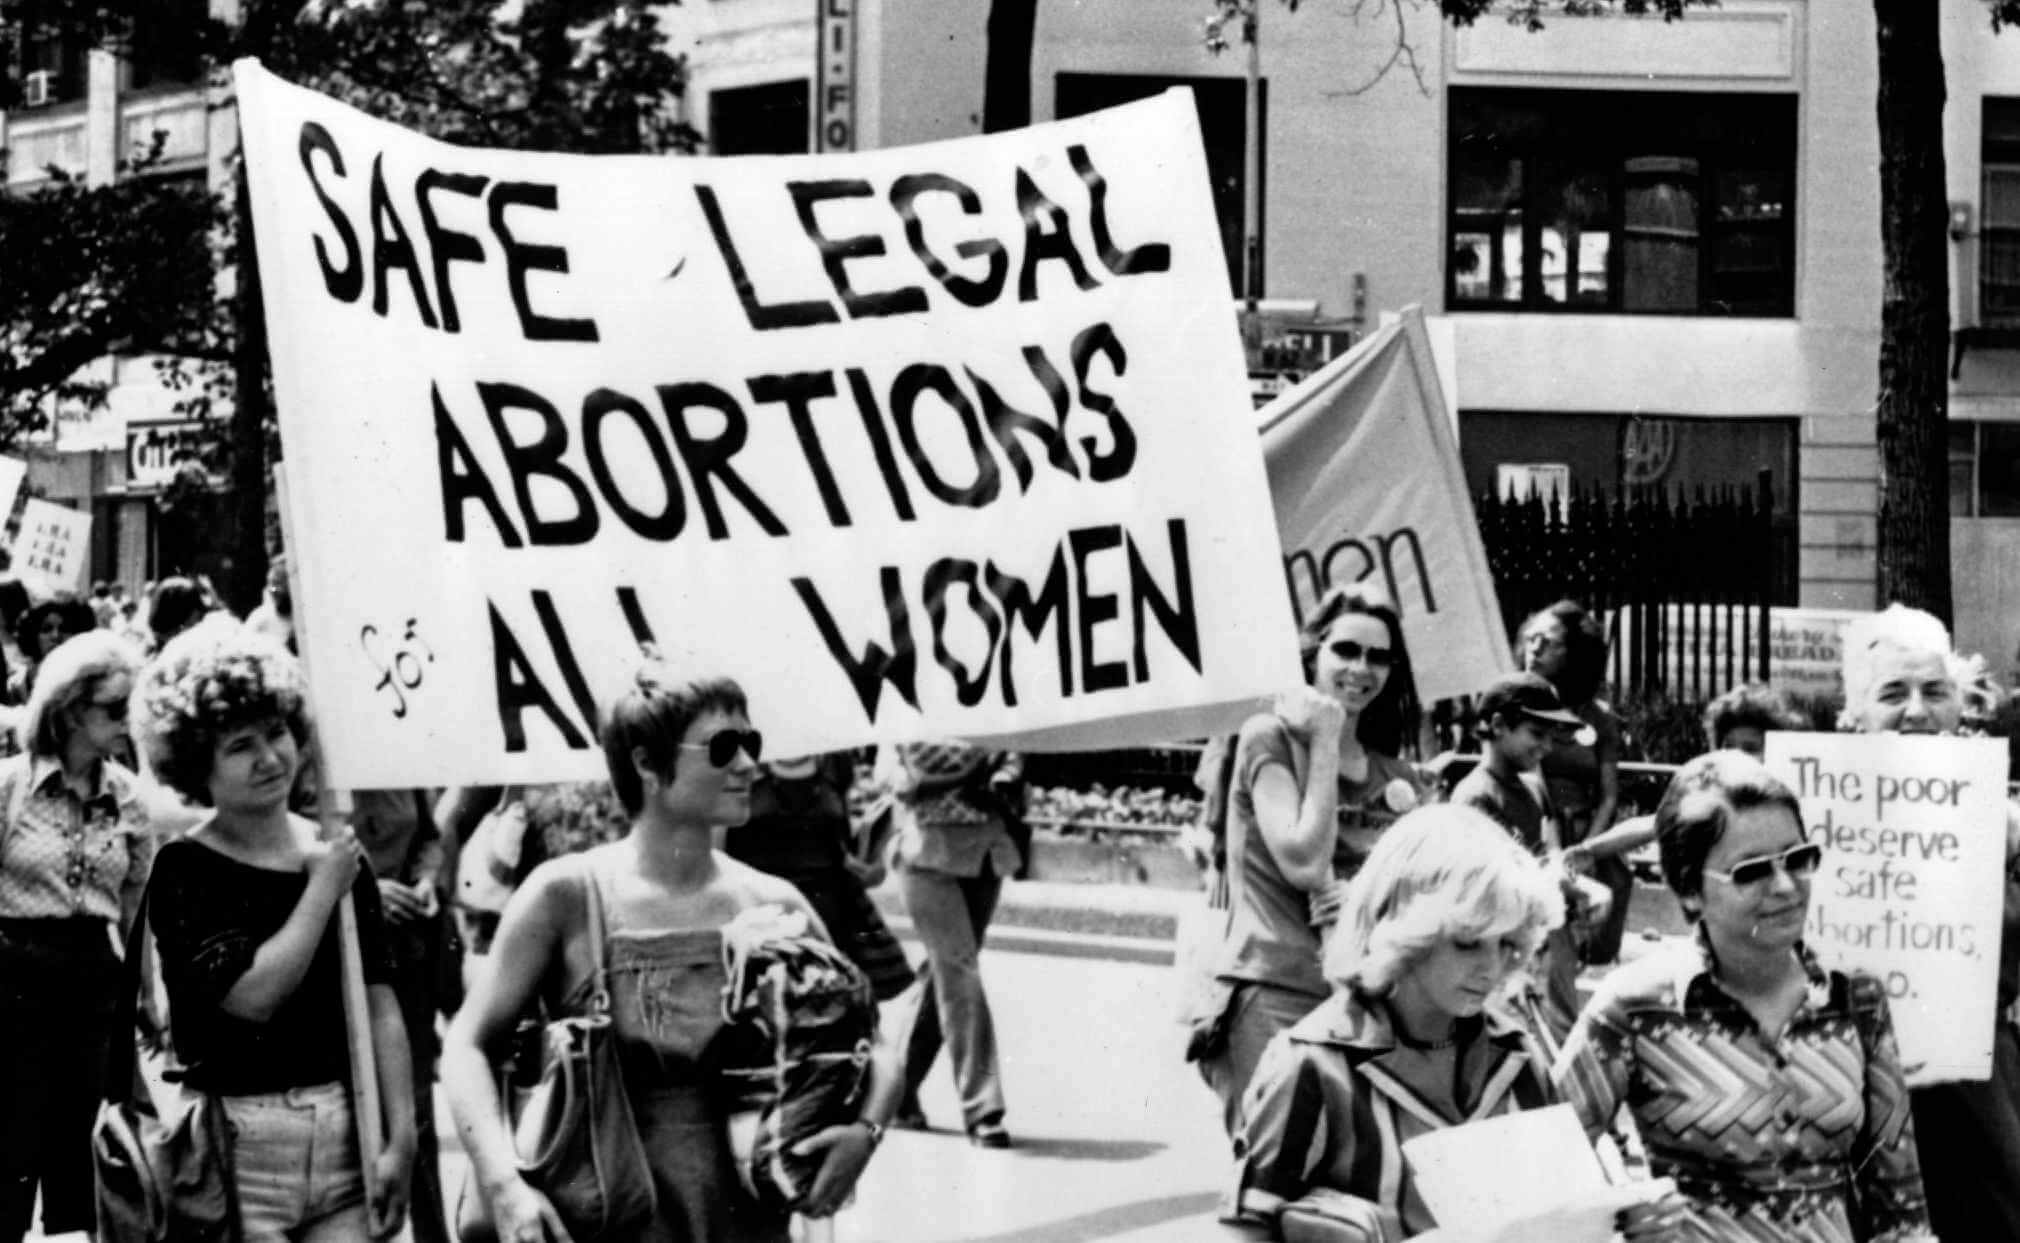 essay samples by julie petersen askpetersen argumentative essay pro choice abortion reasons